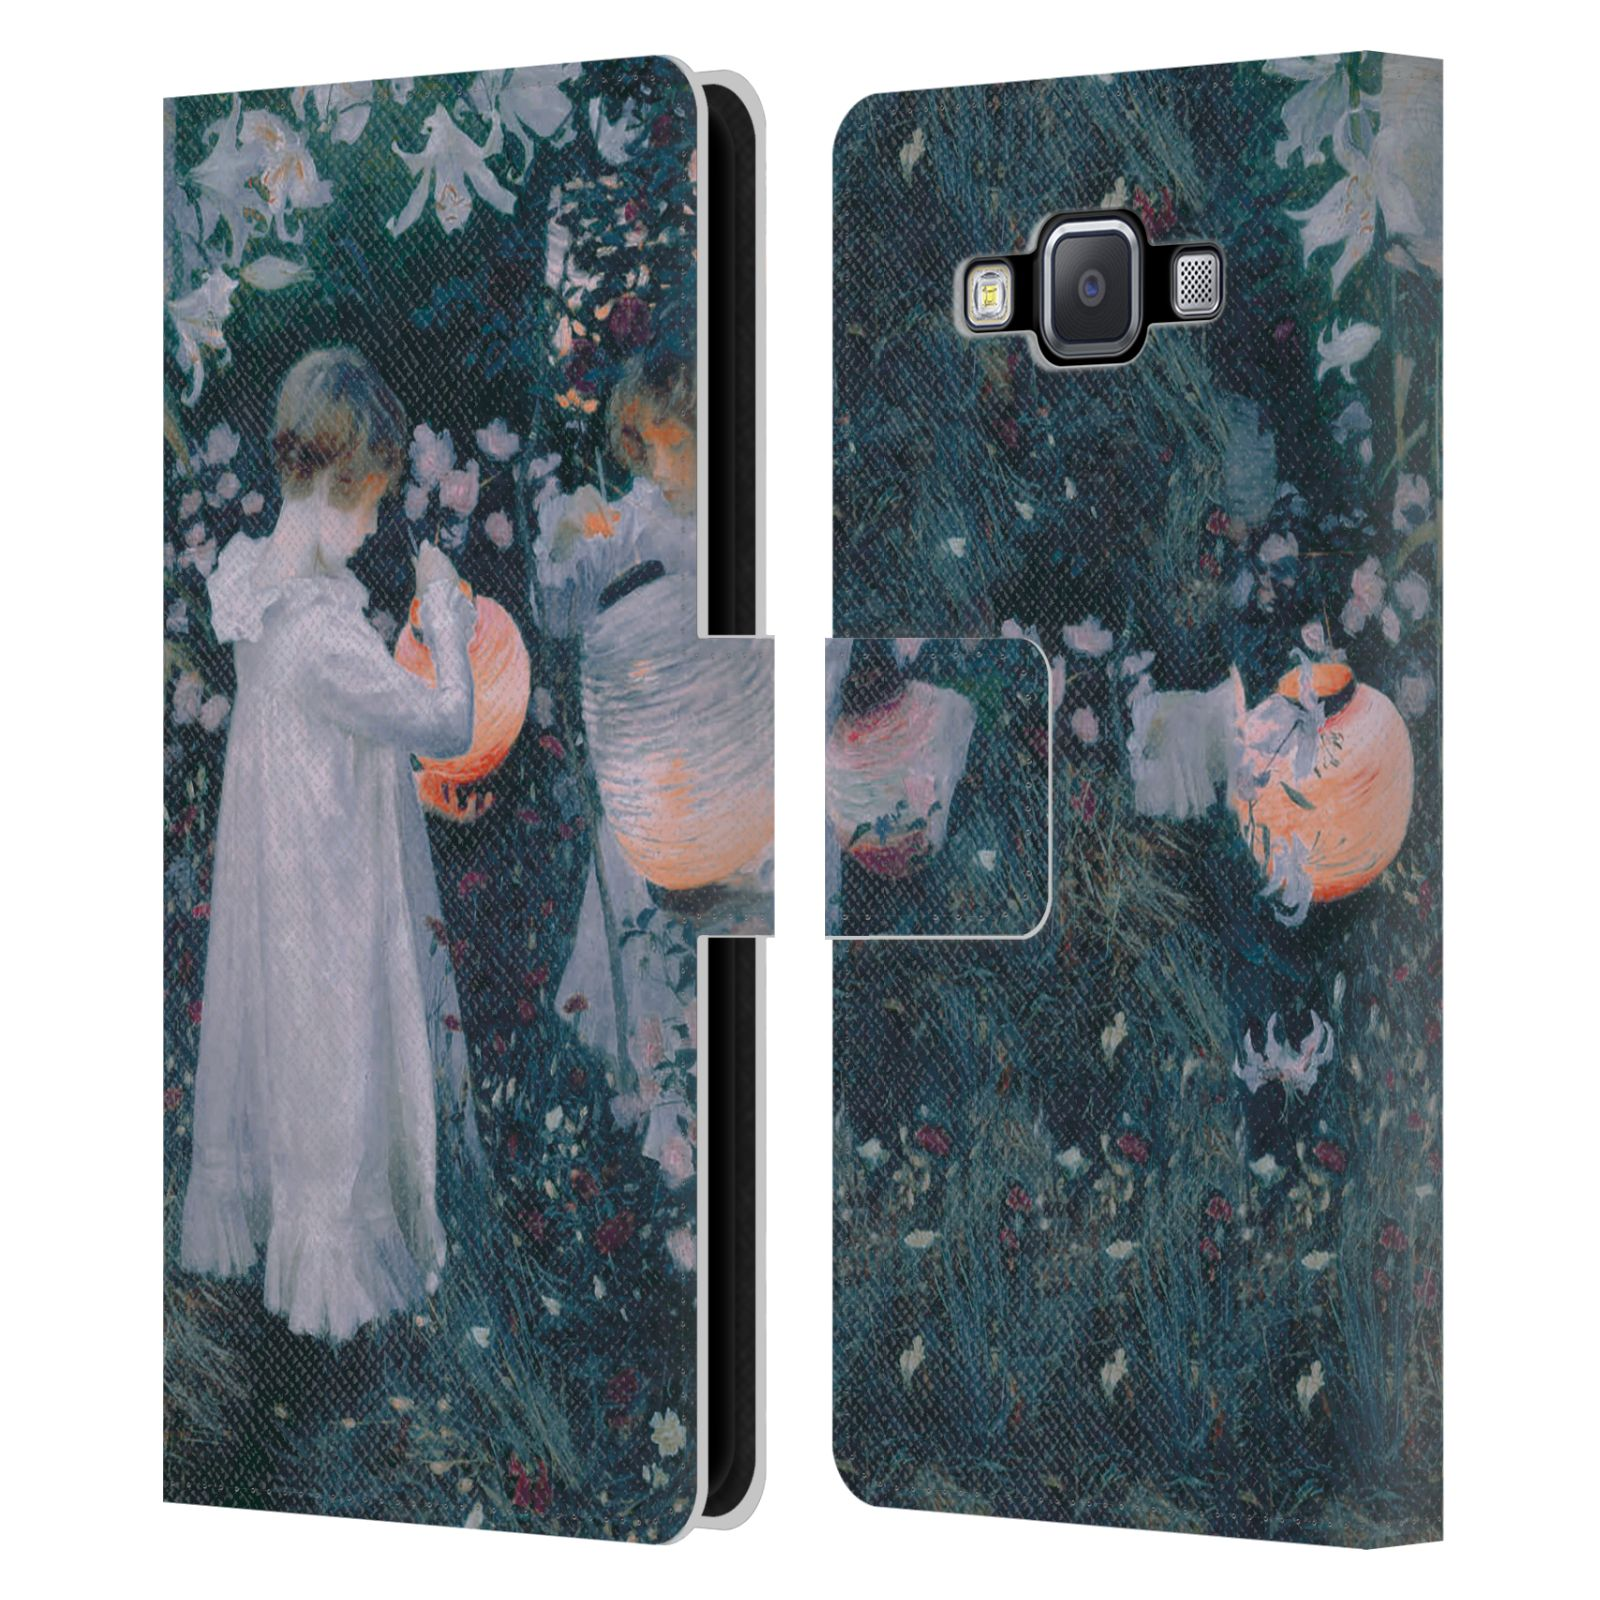 OFFICIAL-MASTERS-COLLECTION-PAINTINGS-2-LEATHER-BOOK-CASE-FOR-SAMSUNG-PHONES-2